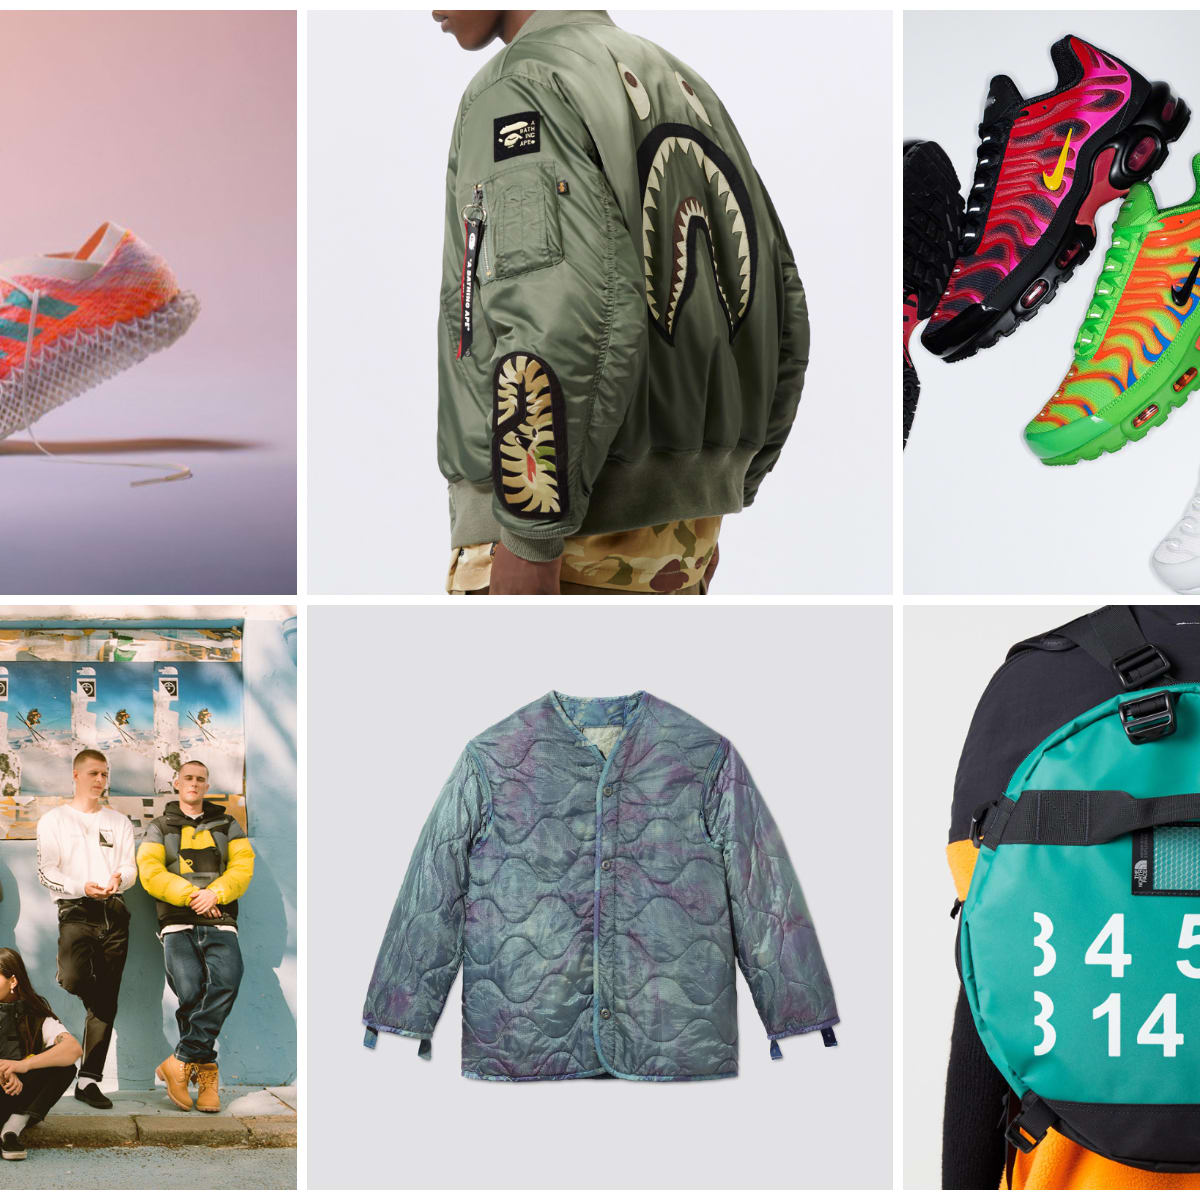 Monday Briefing The North Face X Mm6 Supreme X Nike Air Max Plus Skinny Dunk Sneaker Nike Floral Backpack Adidas Futurecraft Sprung And More Emap